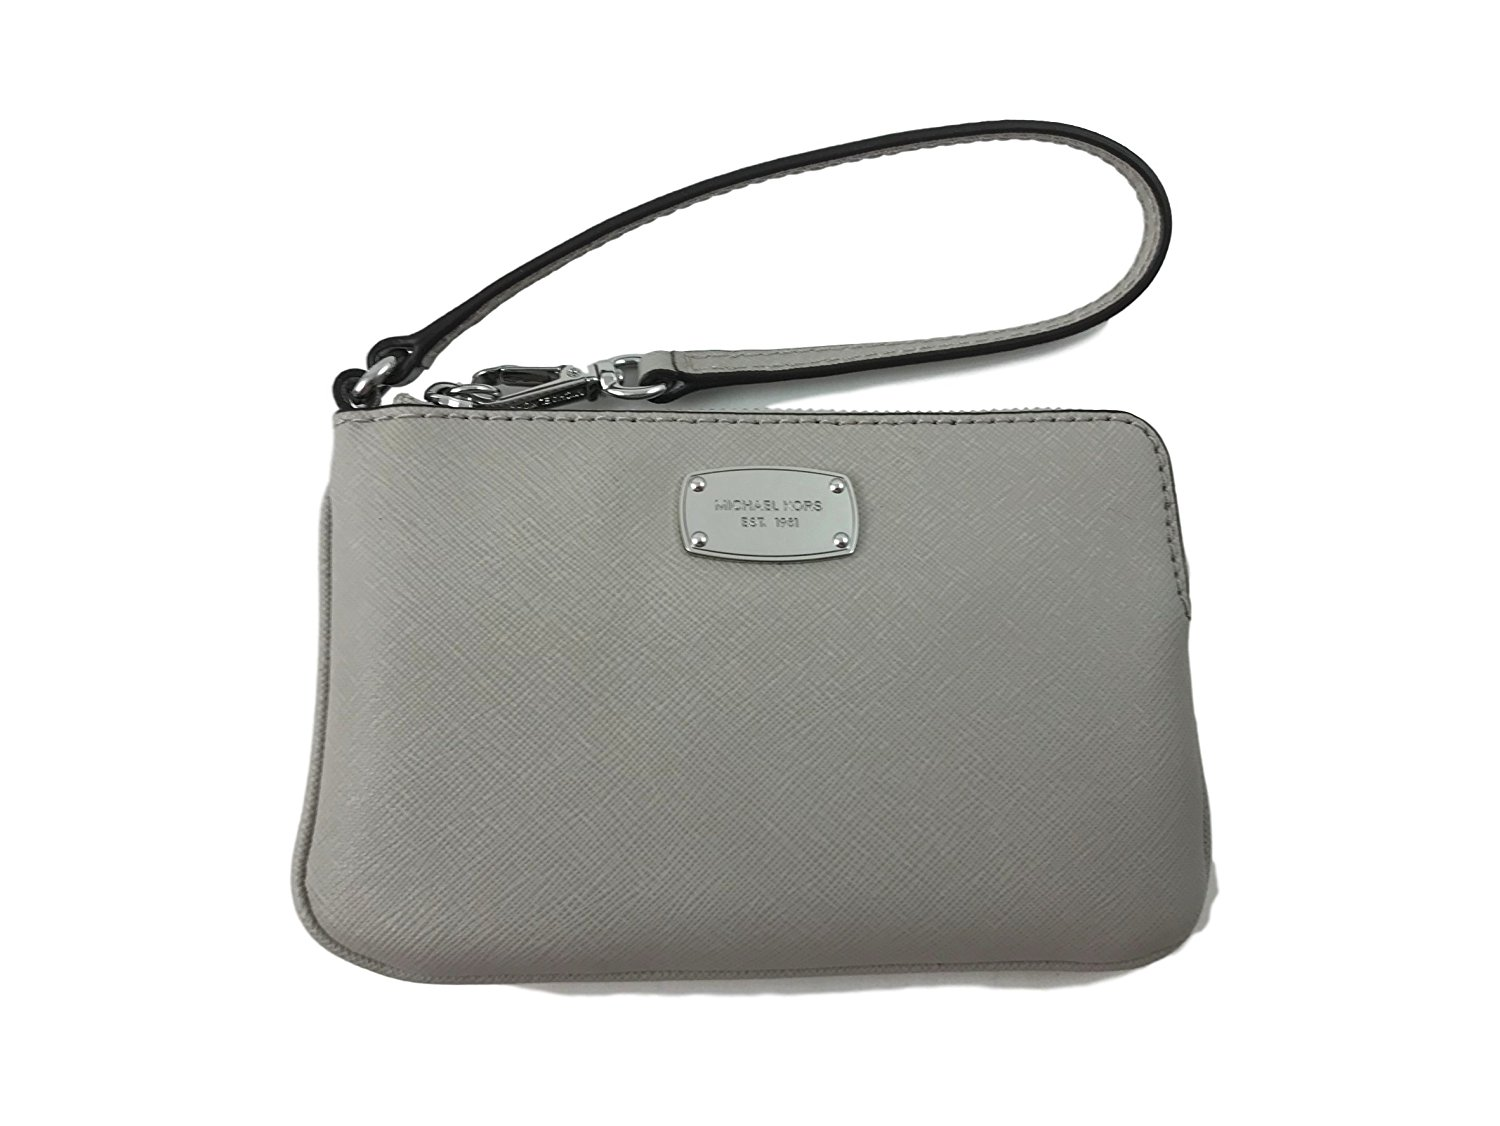 Micheal Kors Jet Set Item Medium Top Zip Leather Wristlet